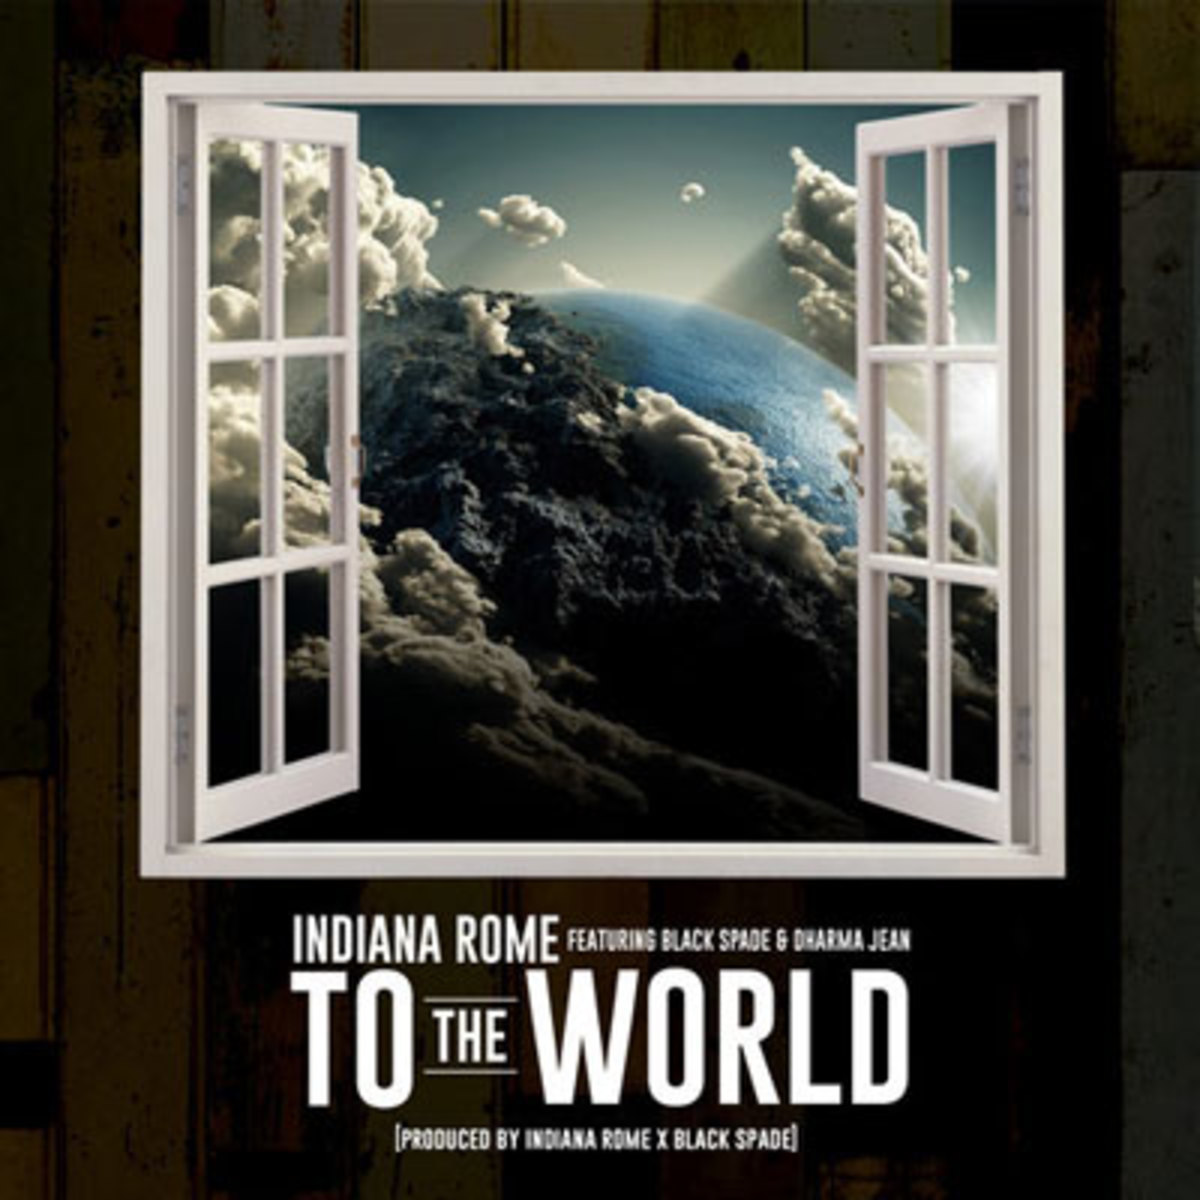 indianarome-totheworld.jpg